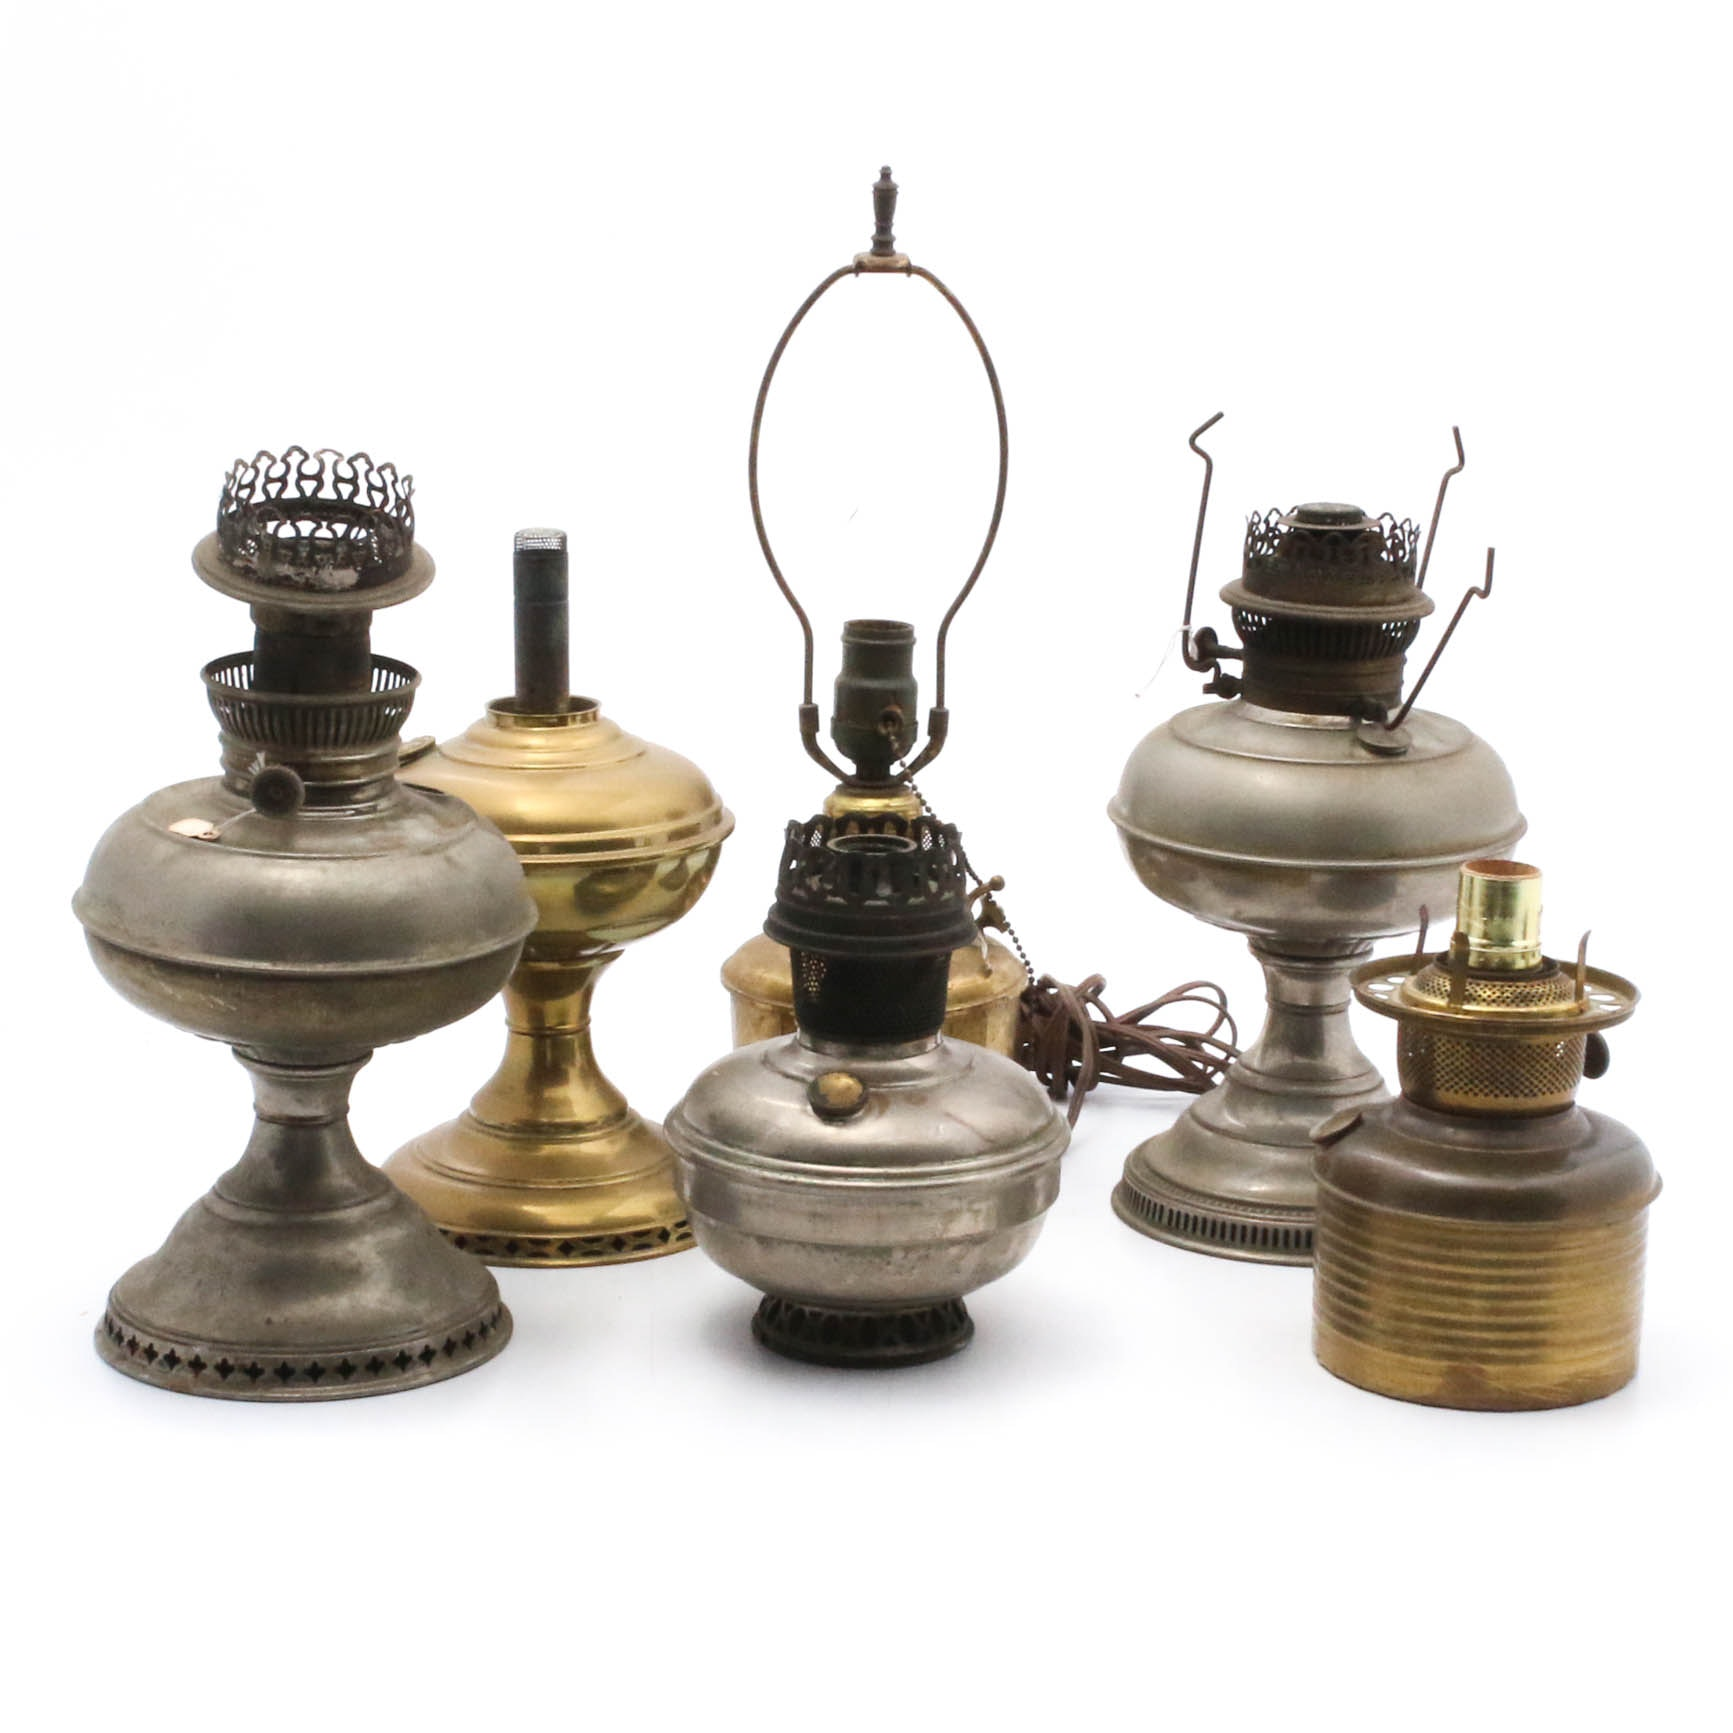 Oil Lamps, Fonts, and Converted Table Lamps, Early 20th Century